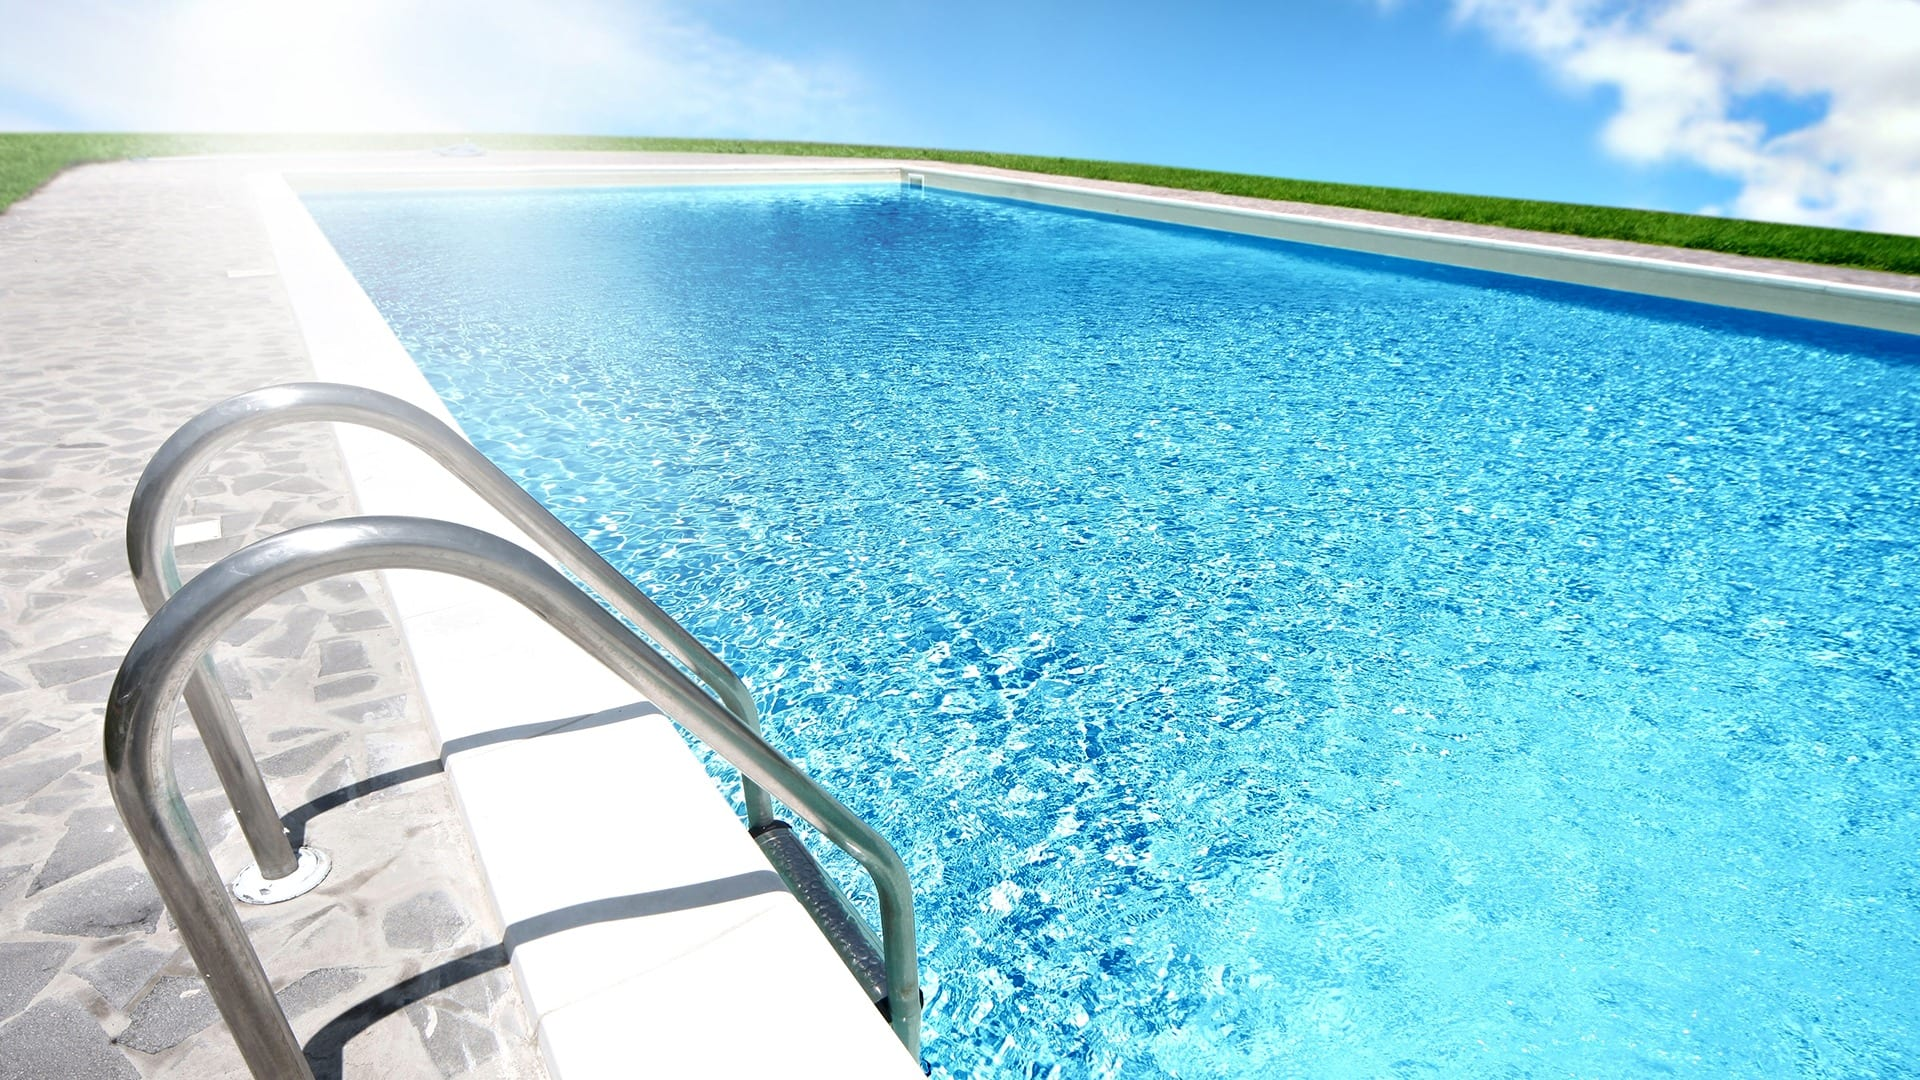 Pool Automation - Purpose and Benefits